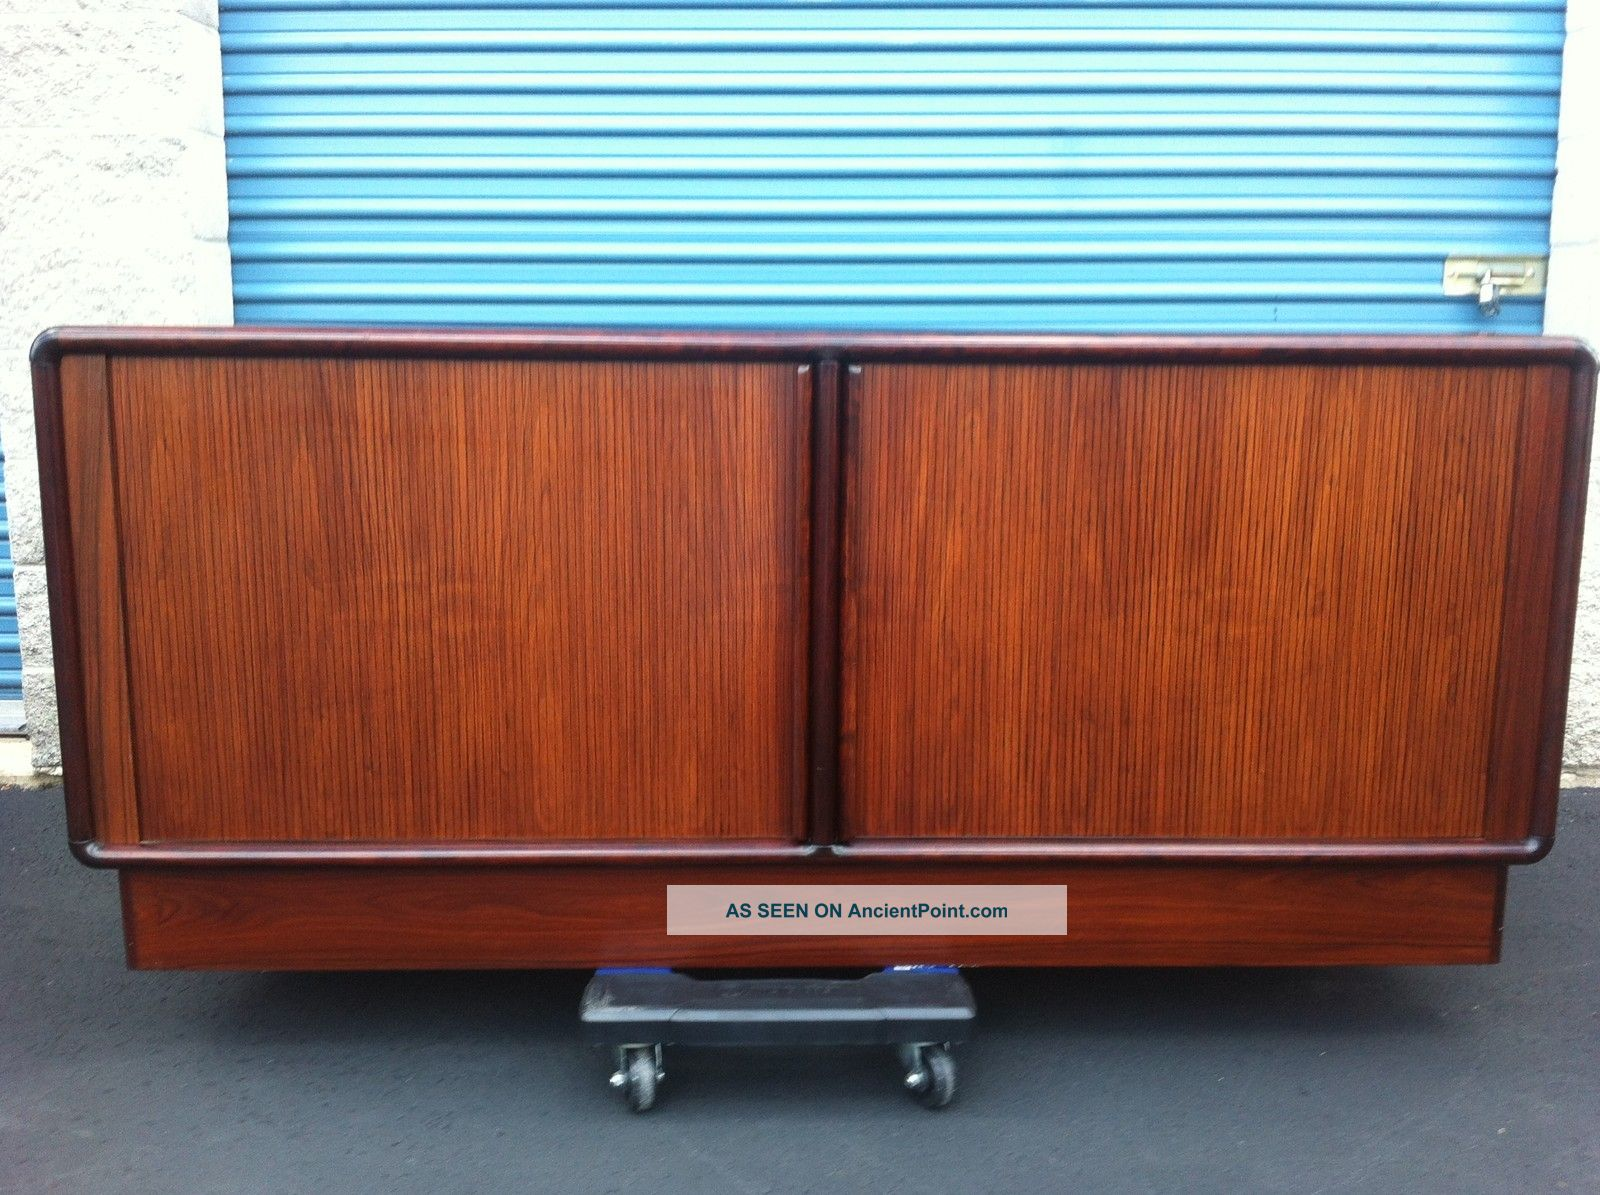 Danish Rosewood Credenza : Rosewood credenza by knoll marble u madel